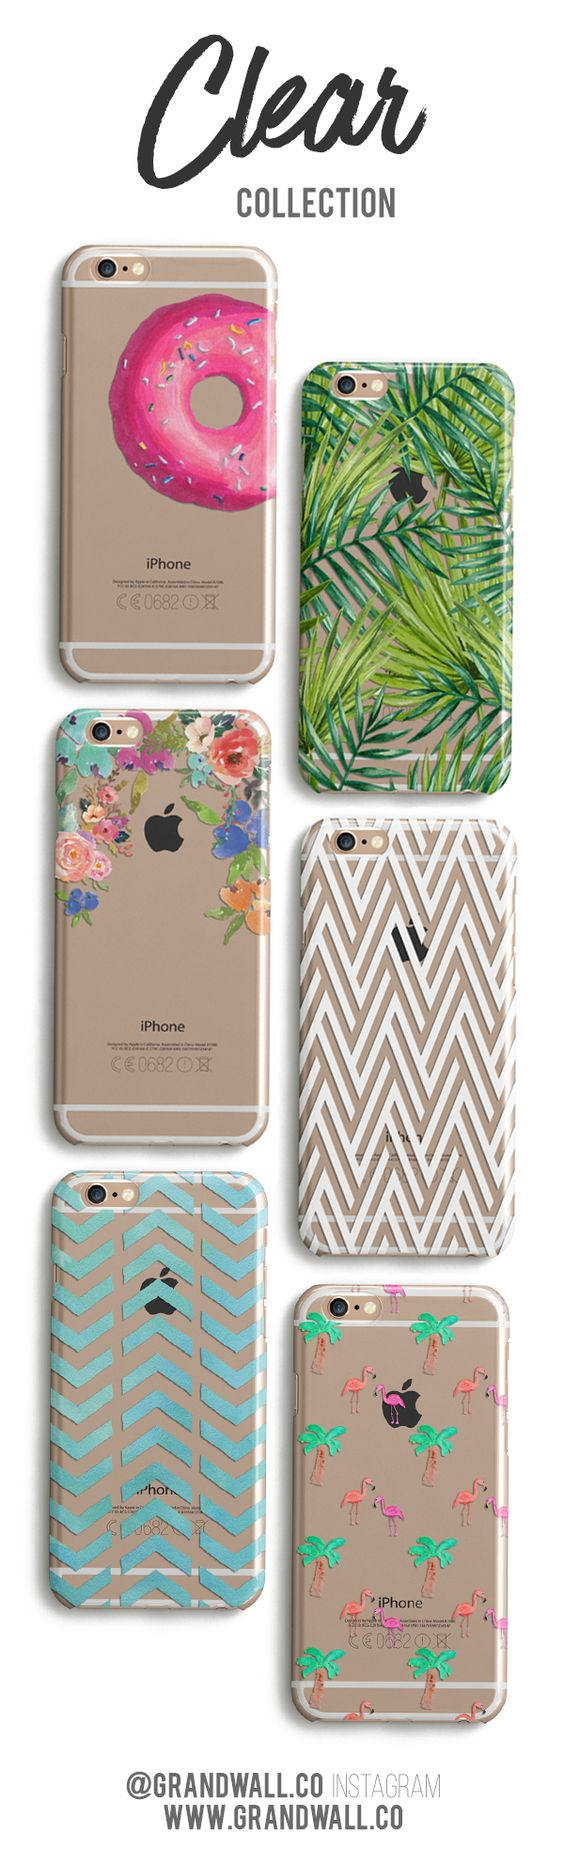 """Use Code """"PINTEREST"""" for 10% off these exclusive @grandwall designs here: http://grandwall.co/collections/clear-phone-cases"""